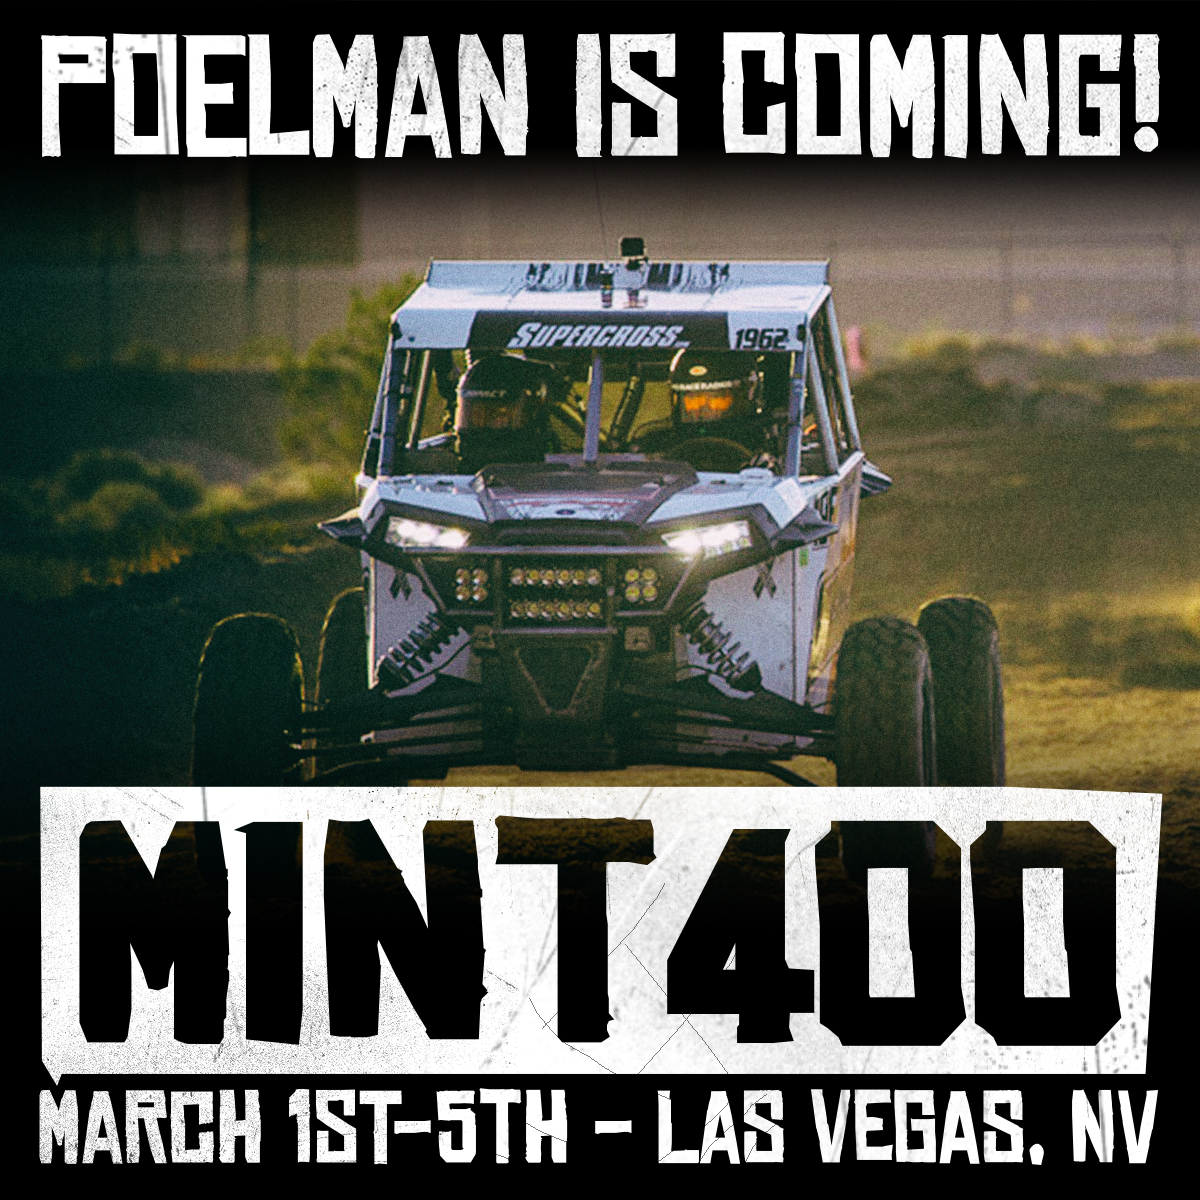 2017_mint_400_DPoelman_is_coming.jpg